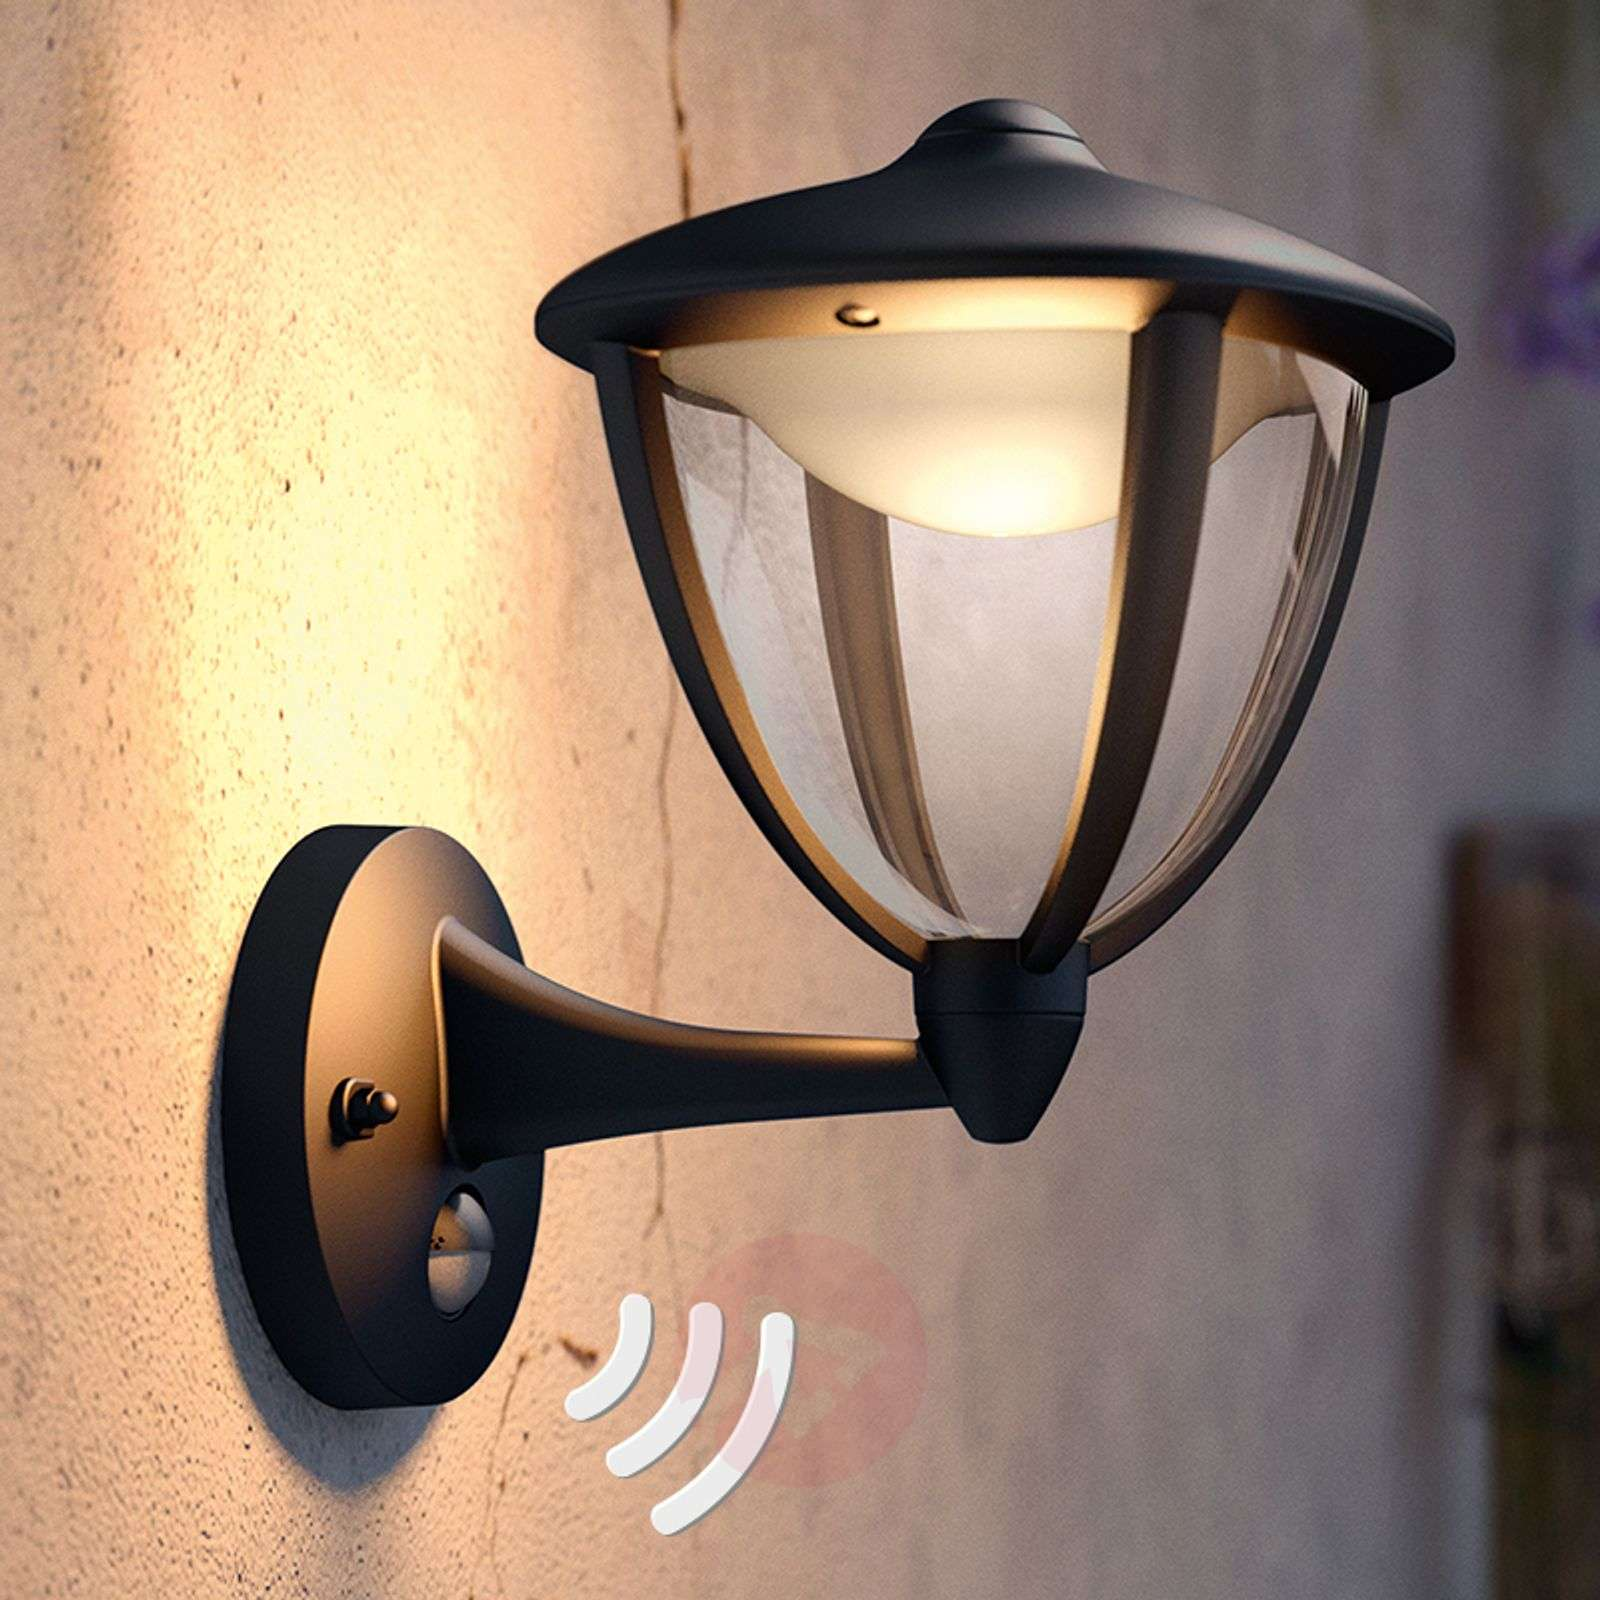 Robin outdoor wall light with sensor and LEDs-7531779-01